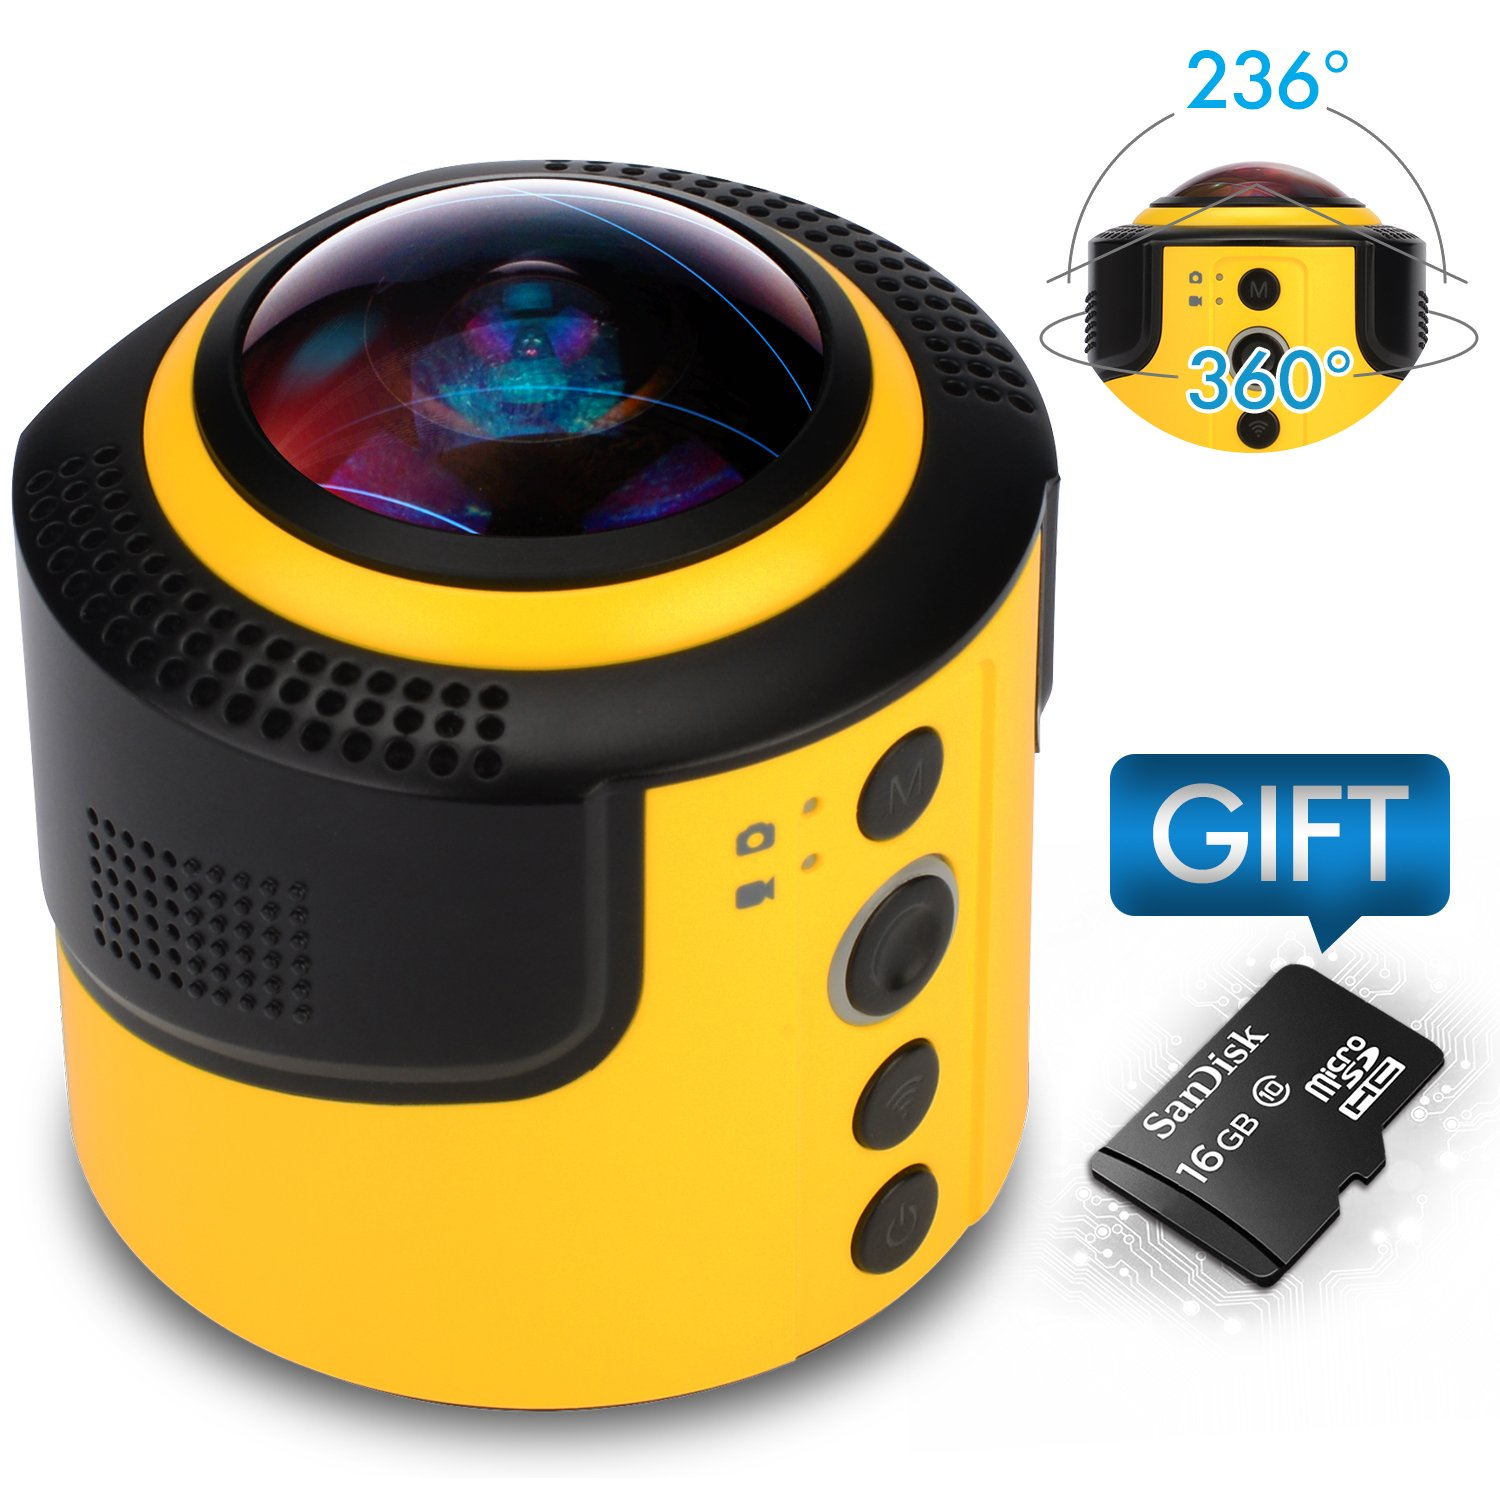 JoyPlus 360° Sports Video VR Cameras Spherical Panorama with Micro SD Card by JoyPlus